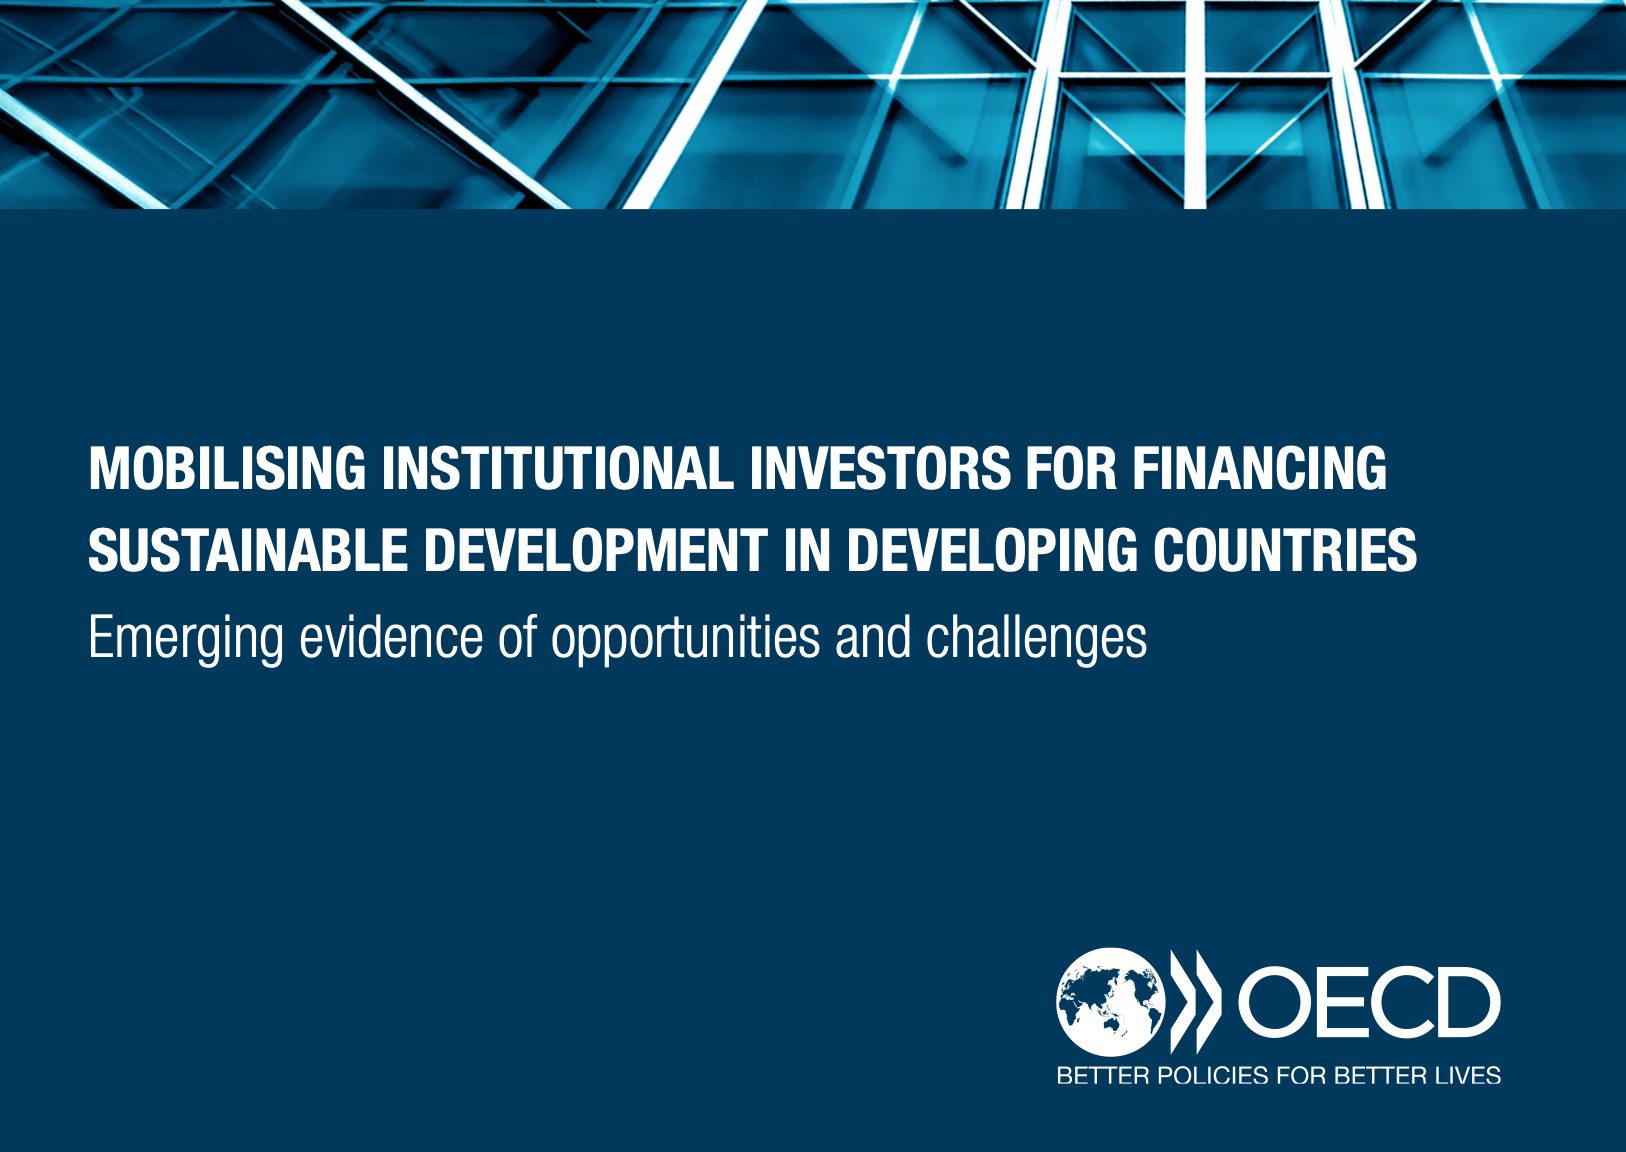 Mobilising institutional investors for financing sustainable development by OECD